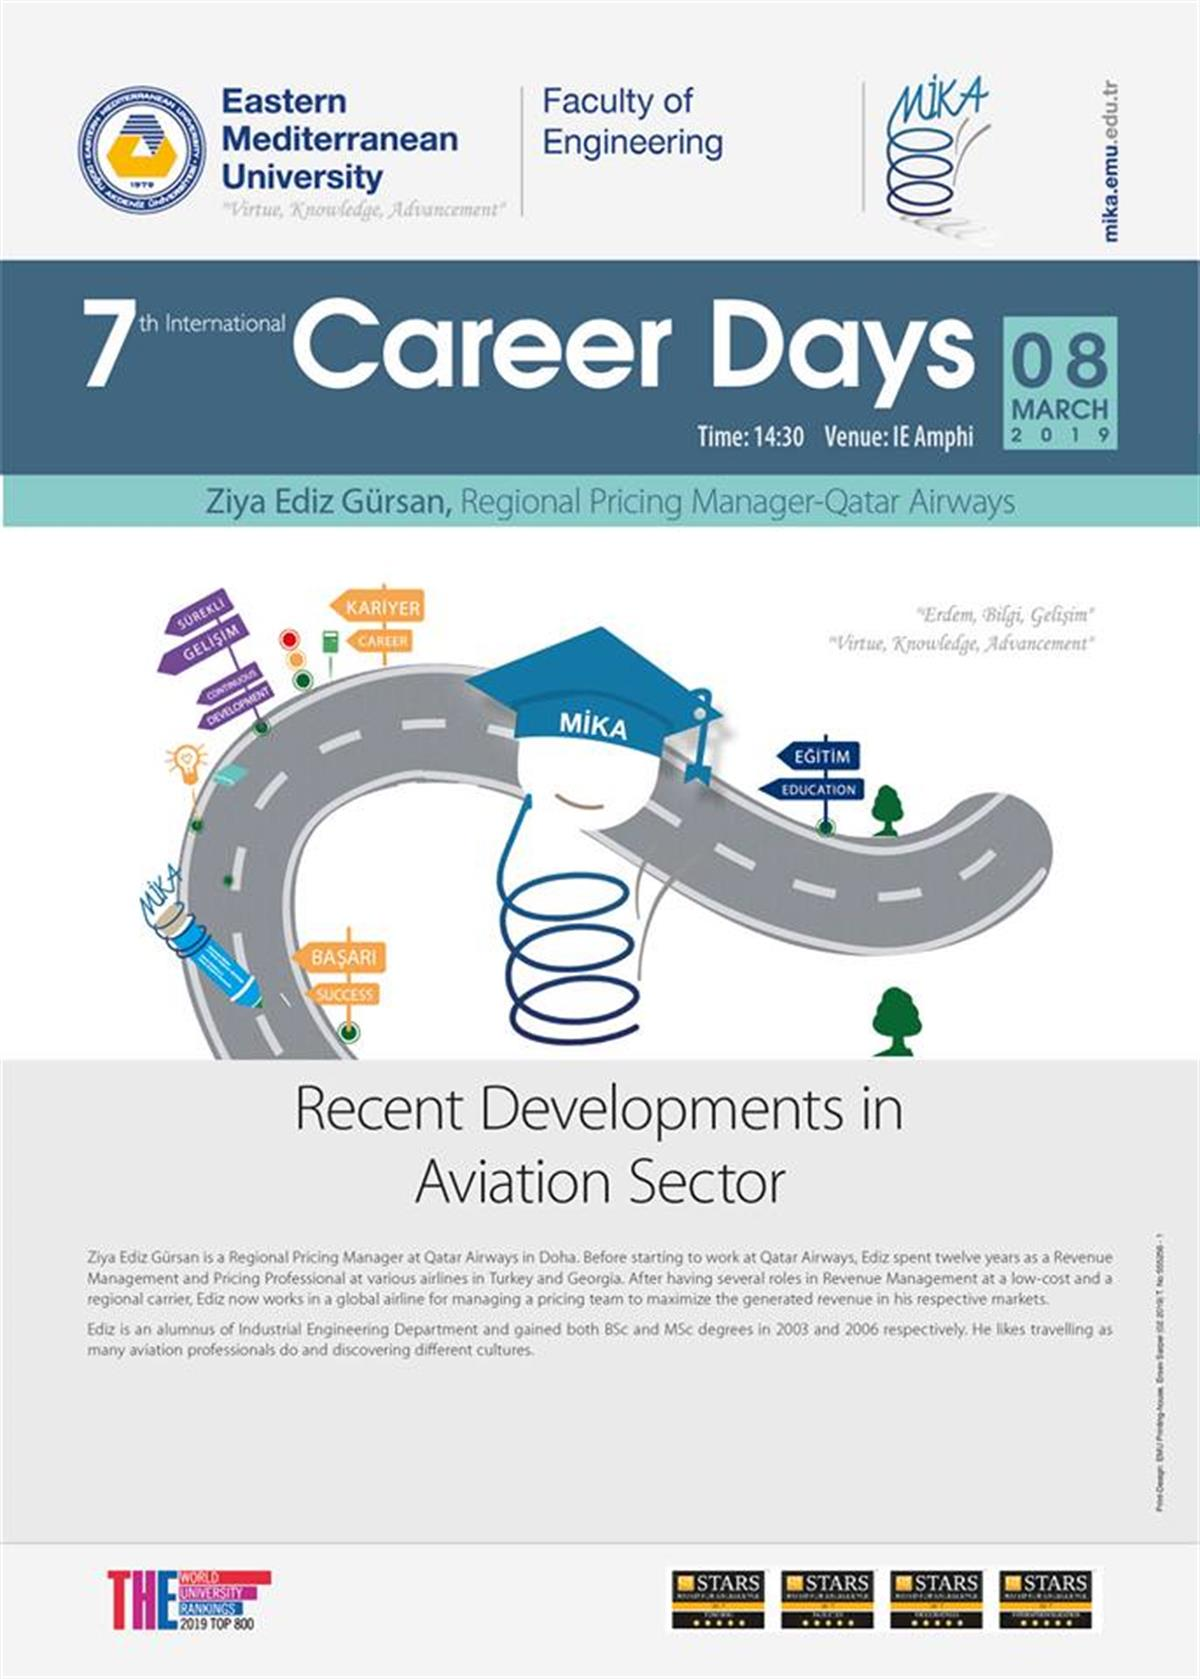 7th International Career Days - Department of Industrial Engineering Announcement